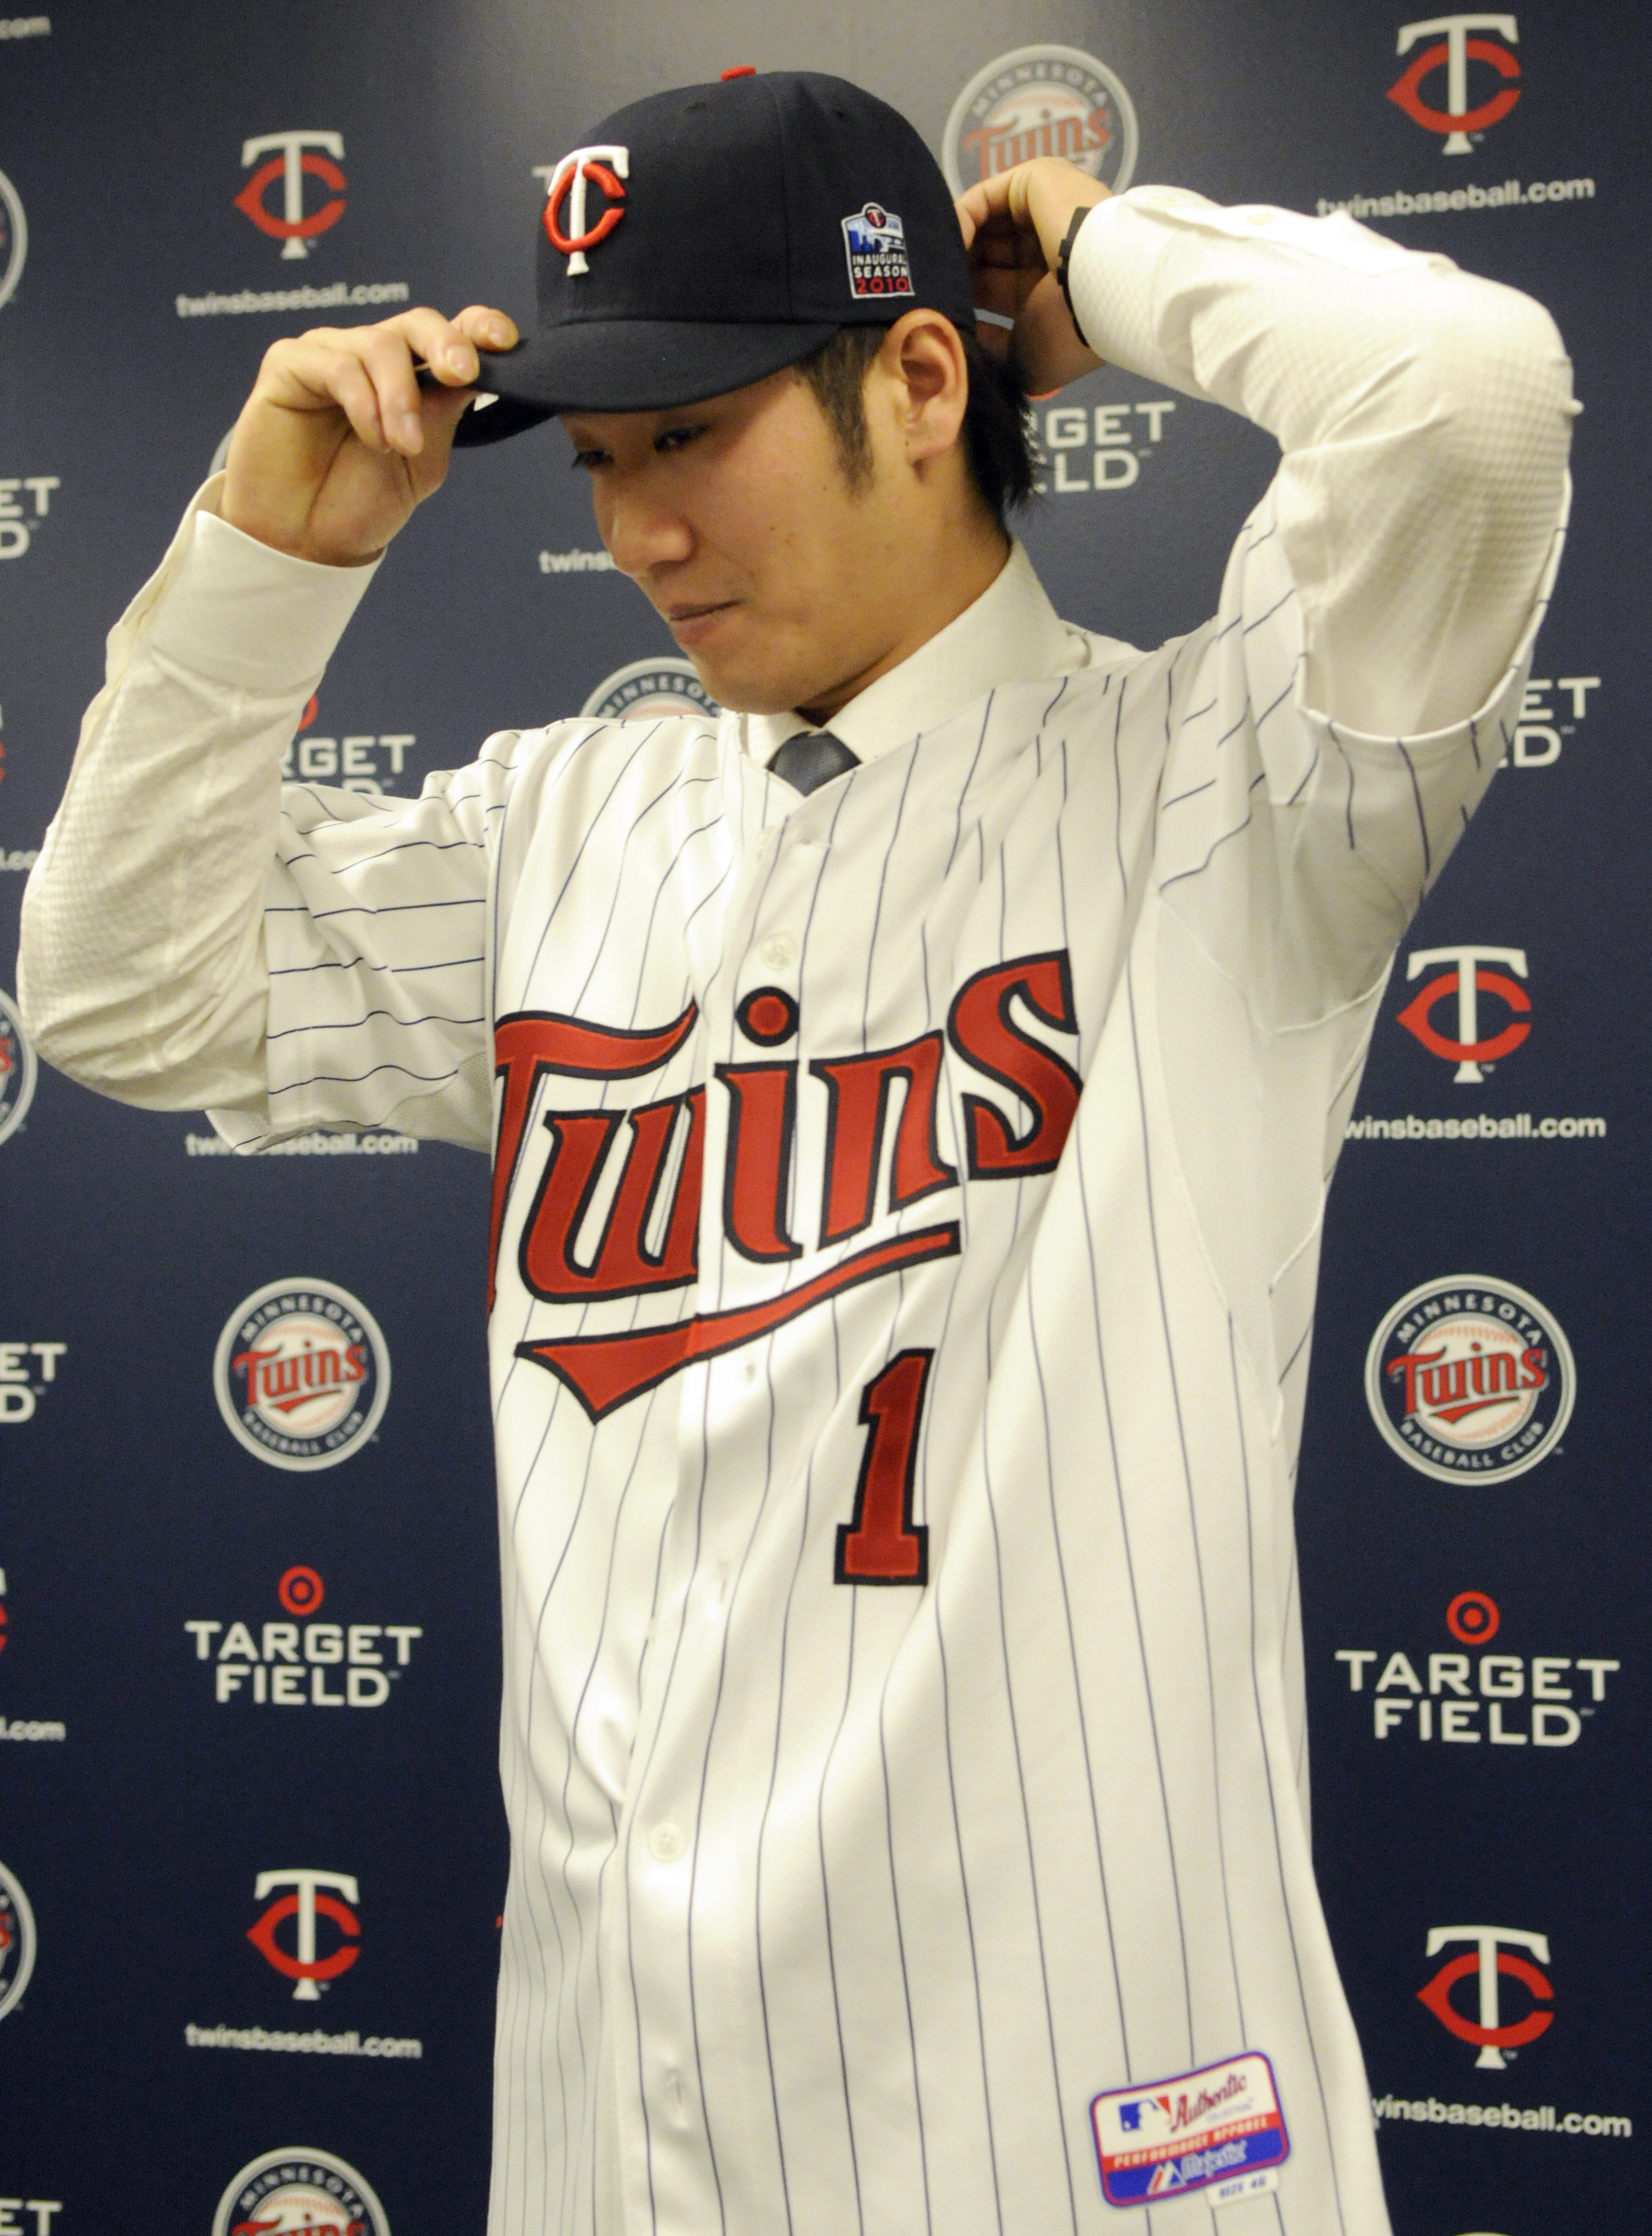 MINNEAPOLIS, MN - DECEMBER 18: Tsuyoshi Nishioka #1 of the Minnesota Twins puts on his Twins hats for members of the media during a press conference on December 18, 2010 at Target Field in Minneapolis, Minnesota. (Photo by Hannah Foslien /Getty Images)